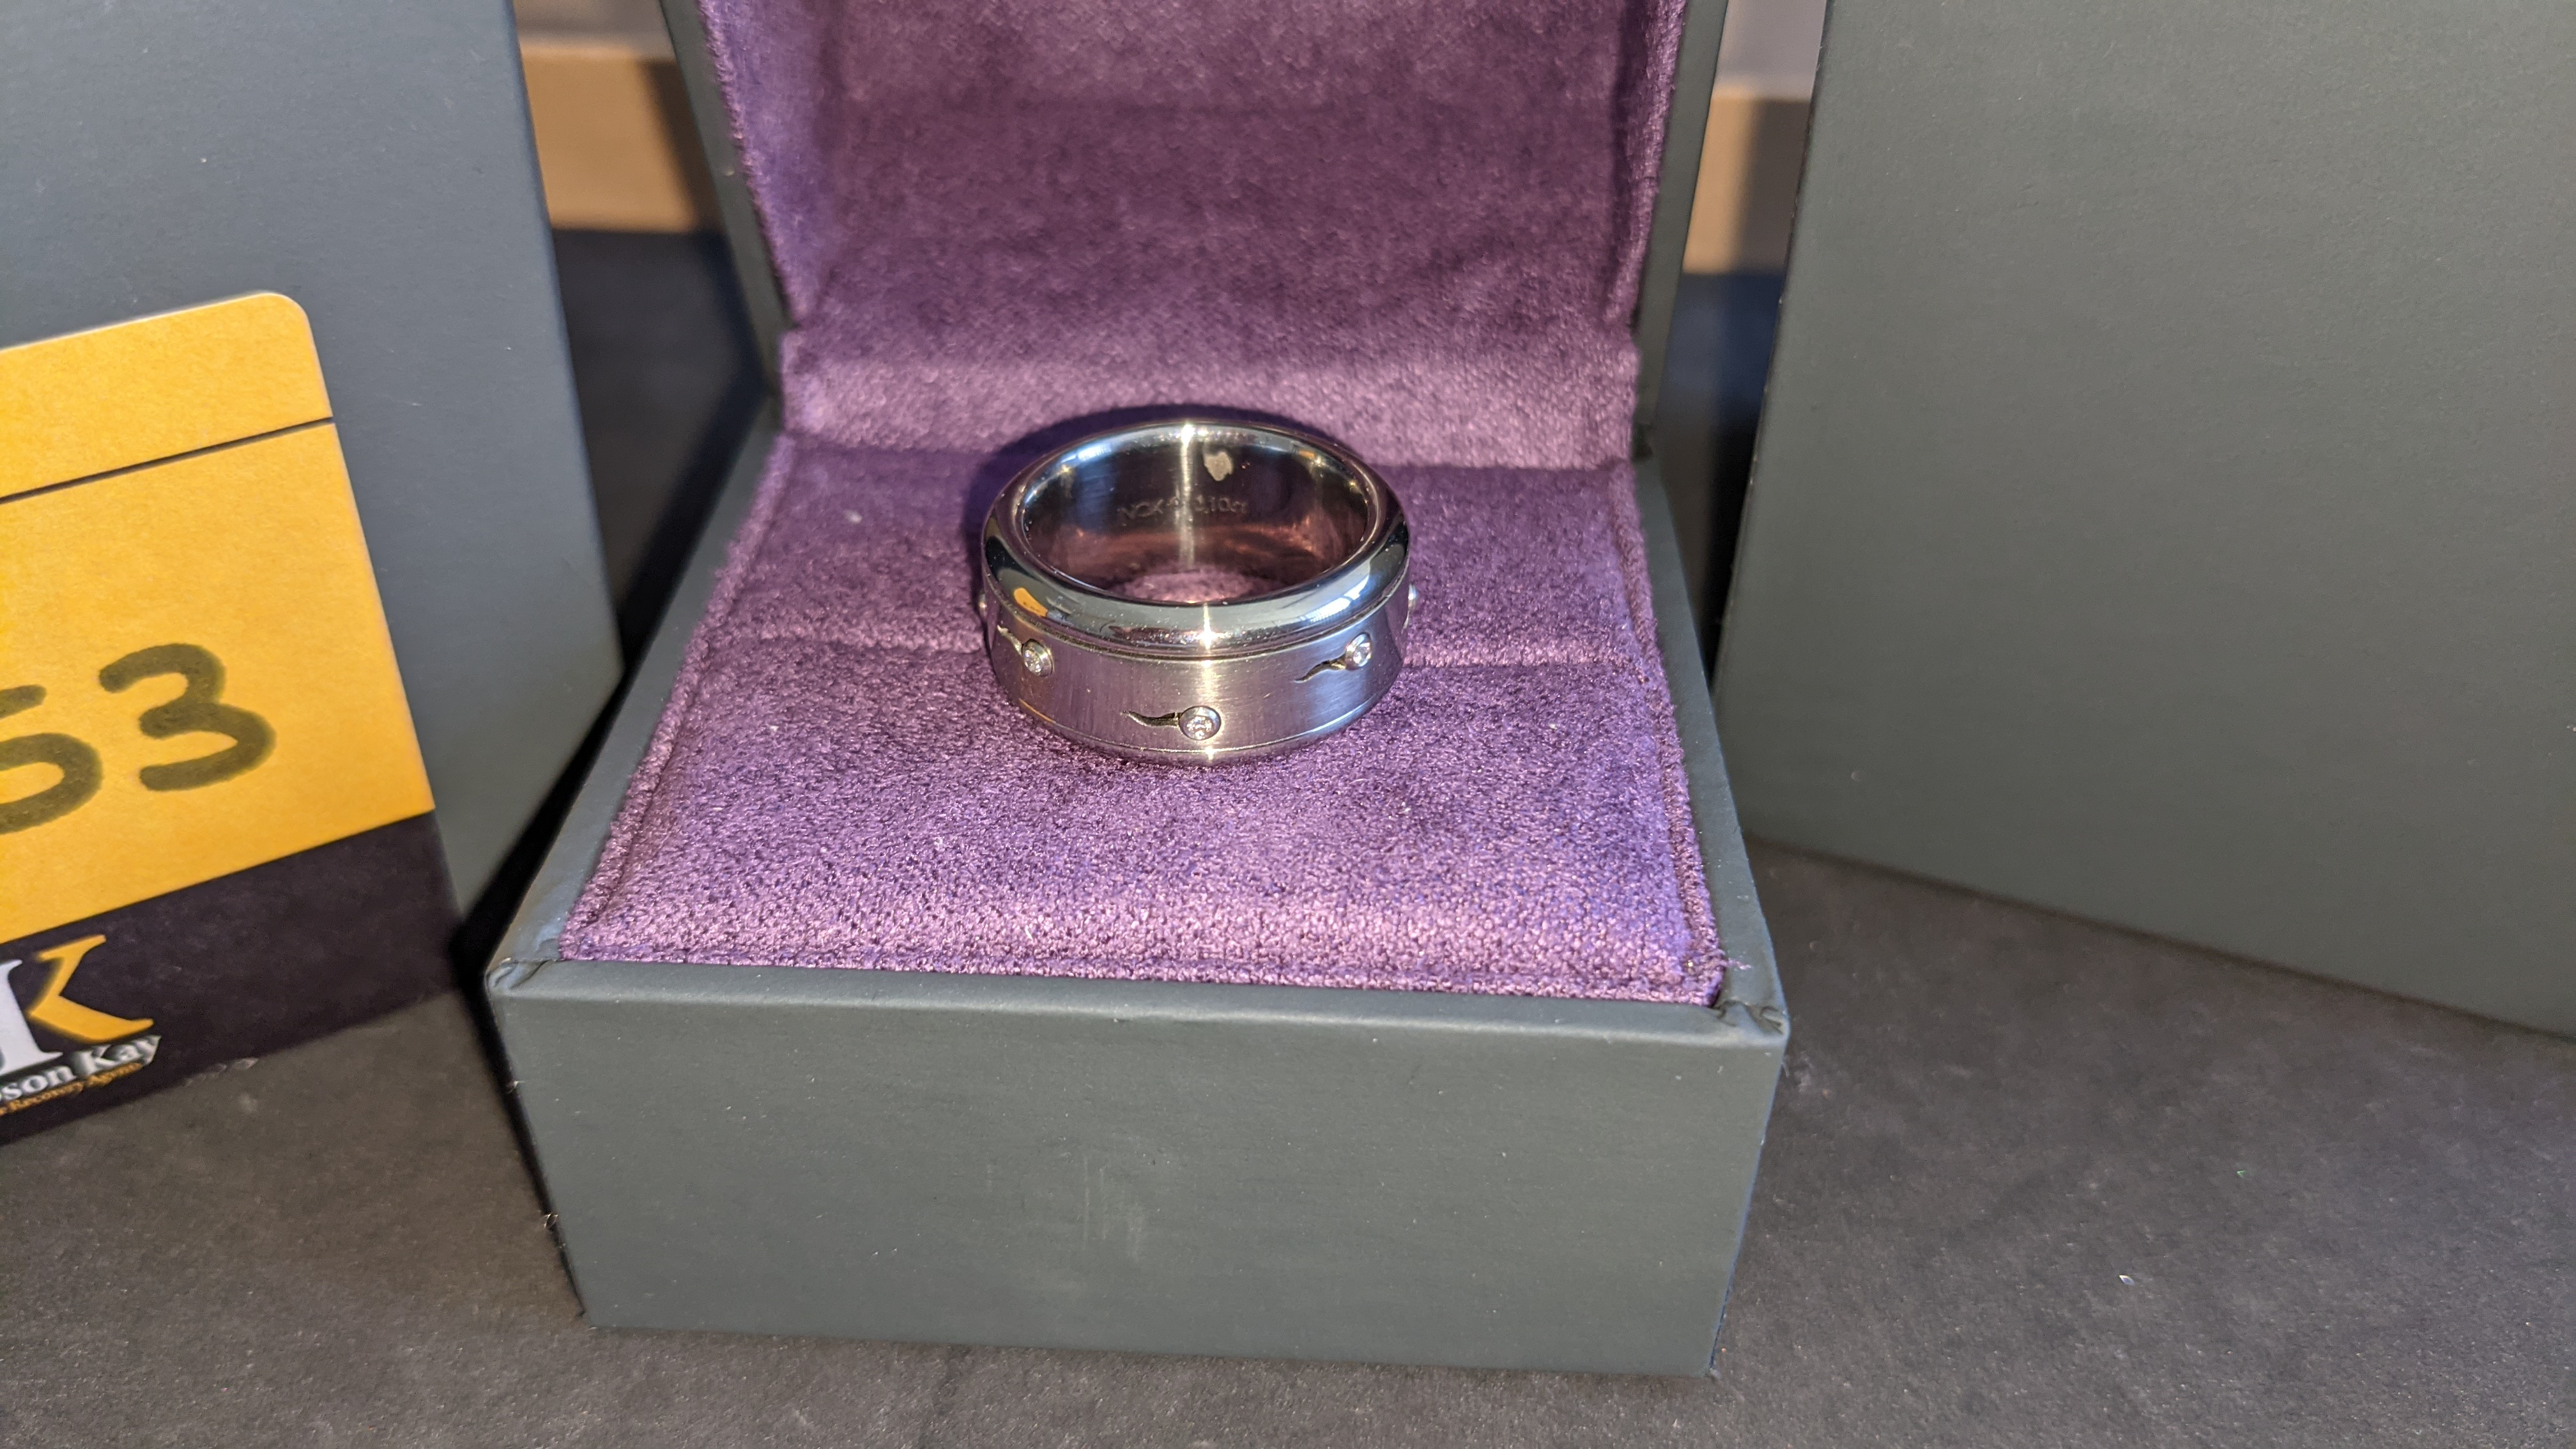 Stainless steel & diamond spin ring RRP £455 - Image 3 of 13